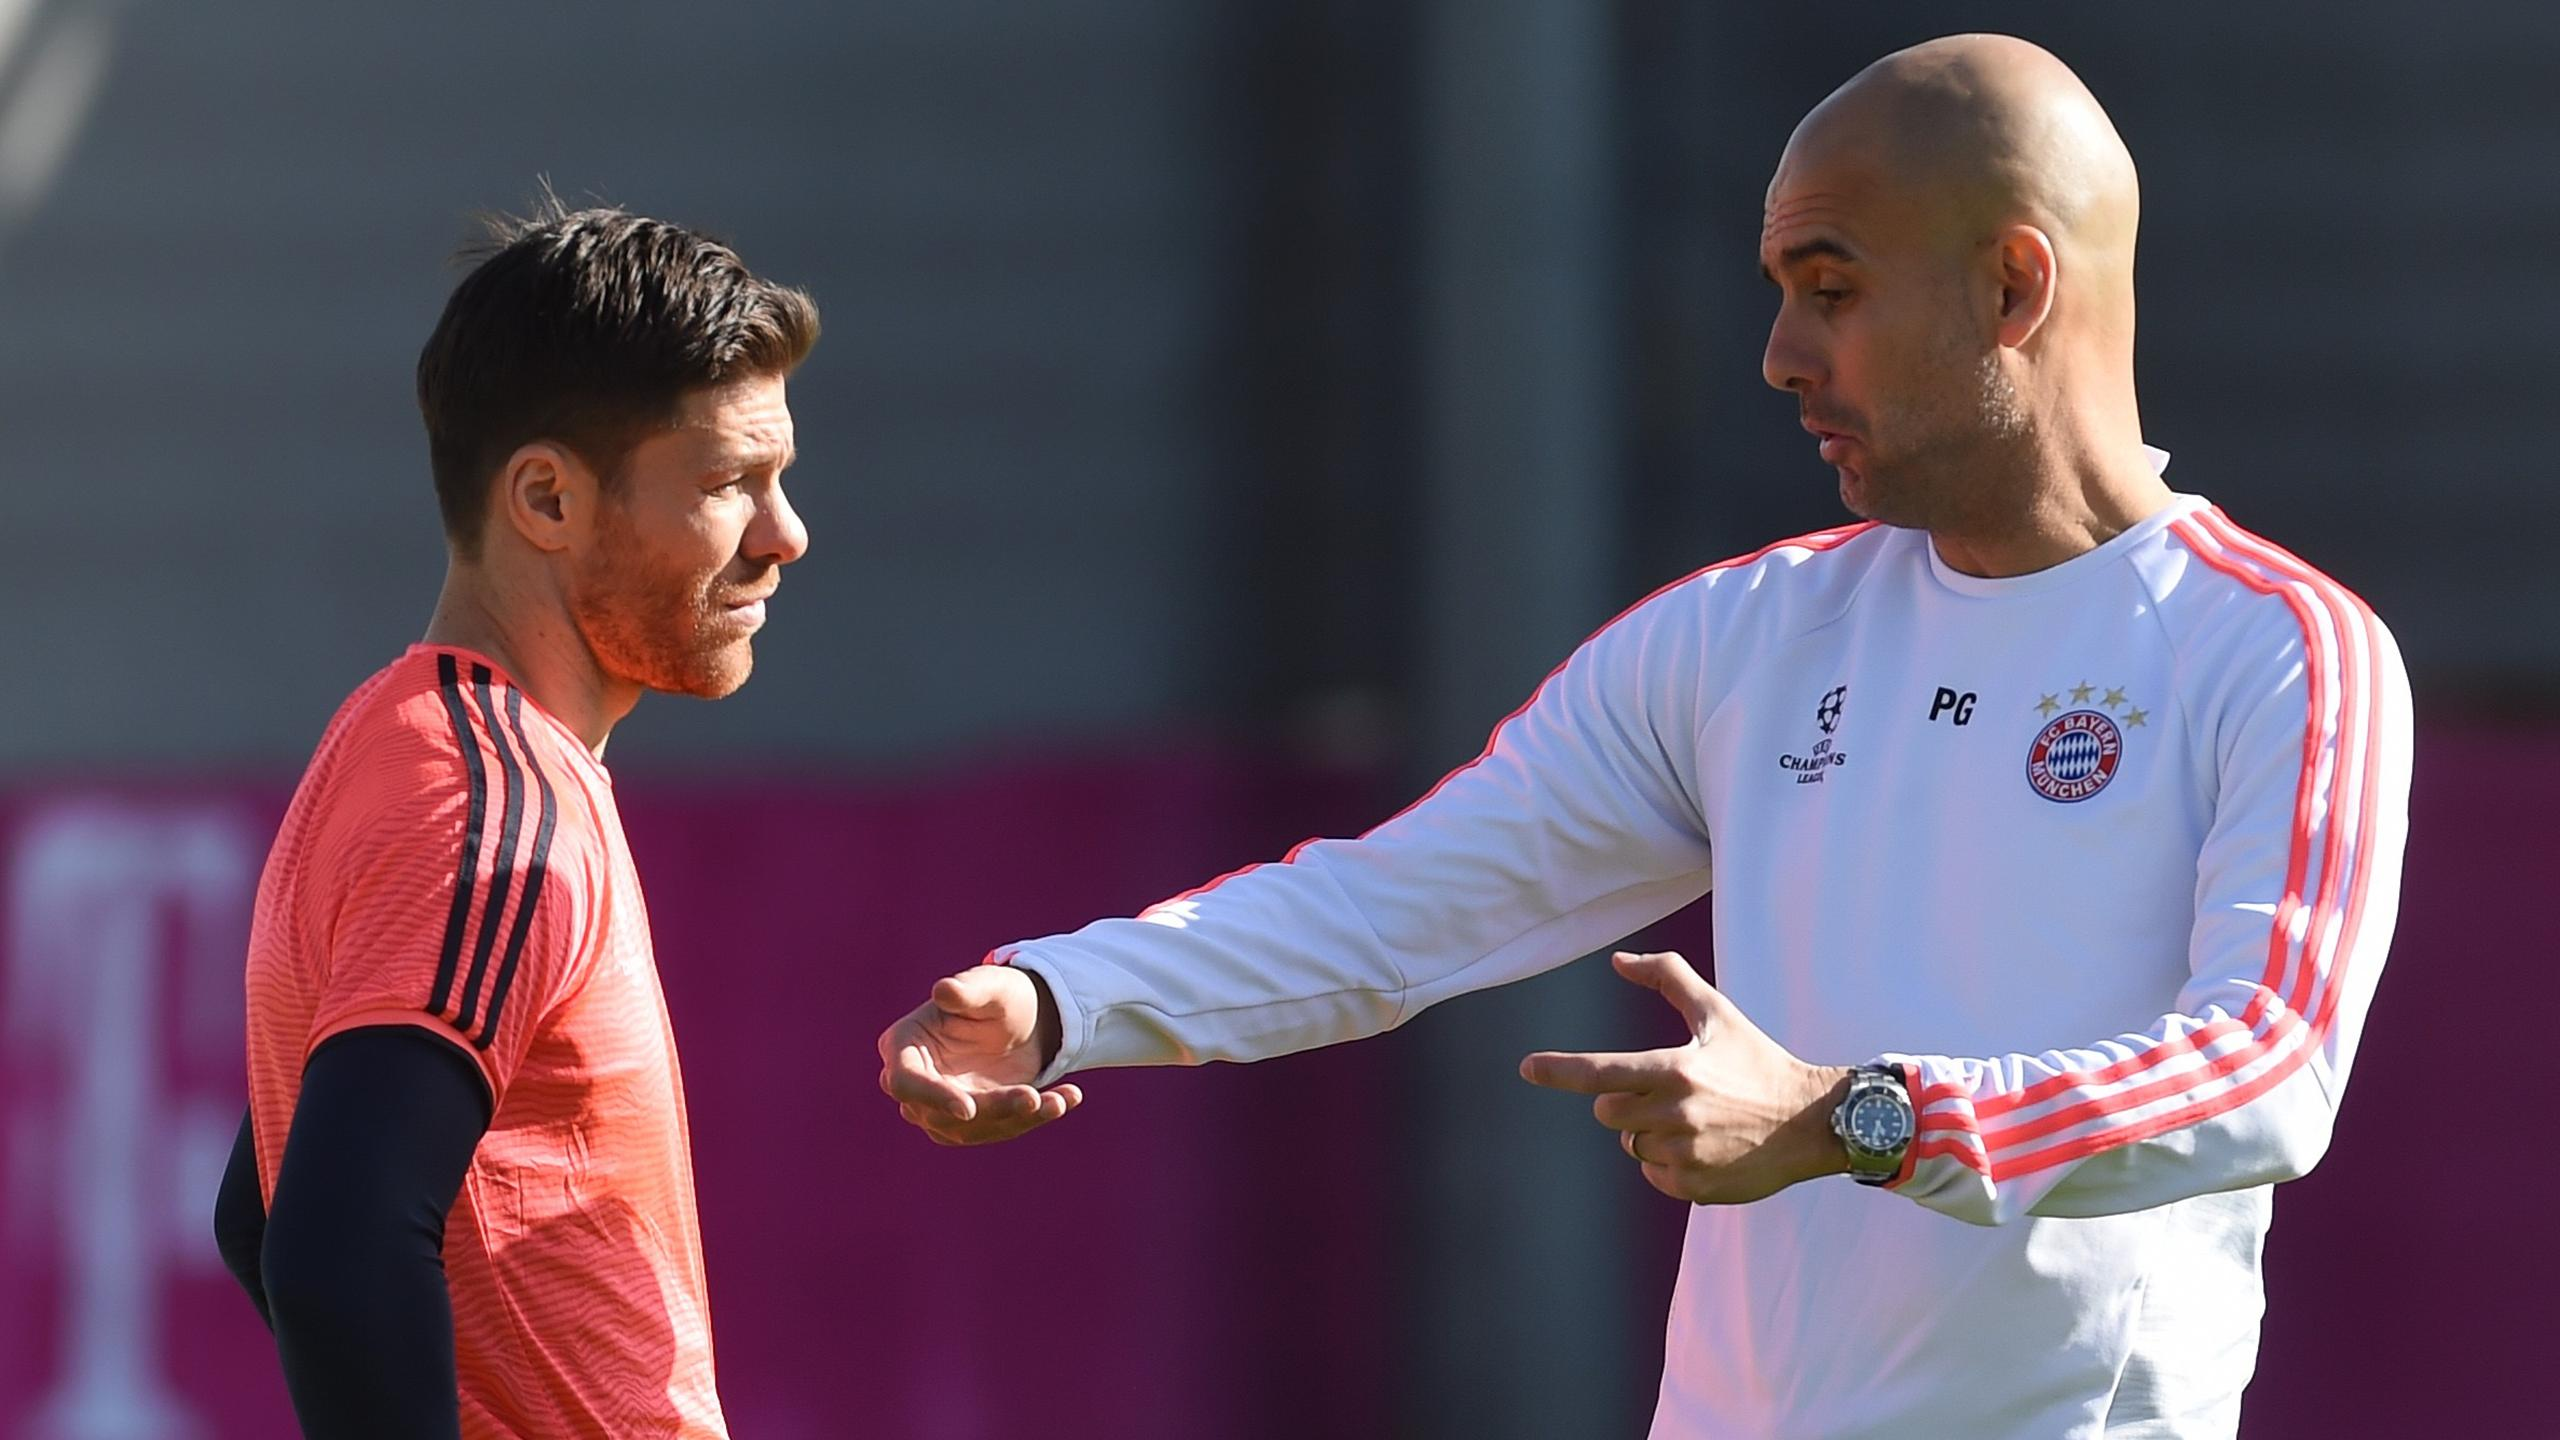 Xabi Alonso and Pep Guardiola - Bayern 2015/2016